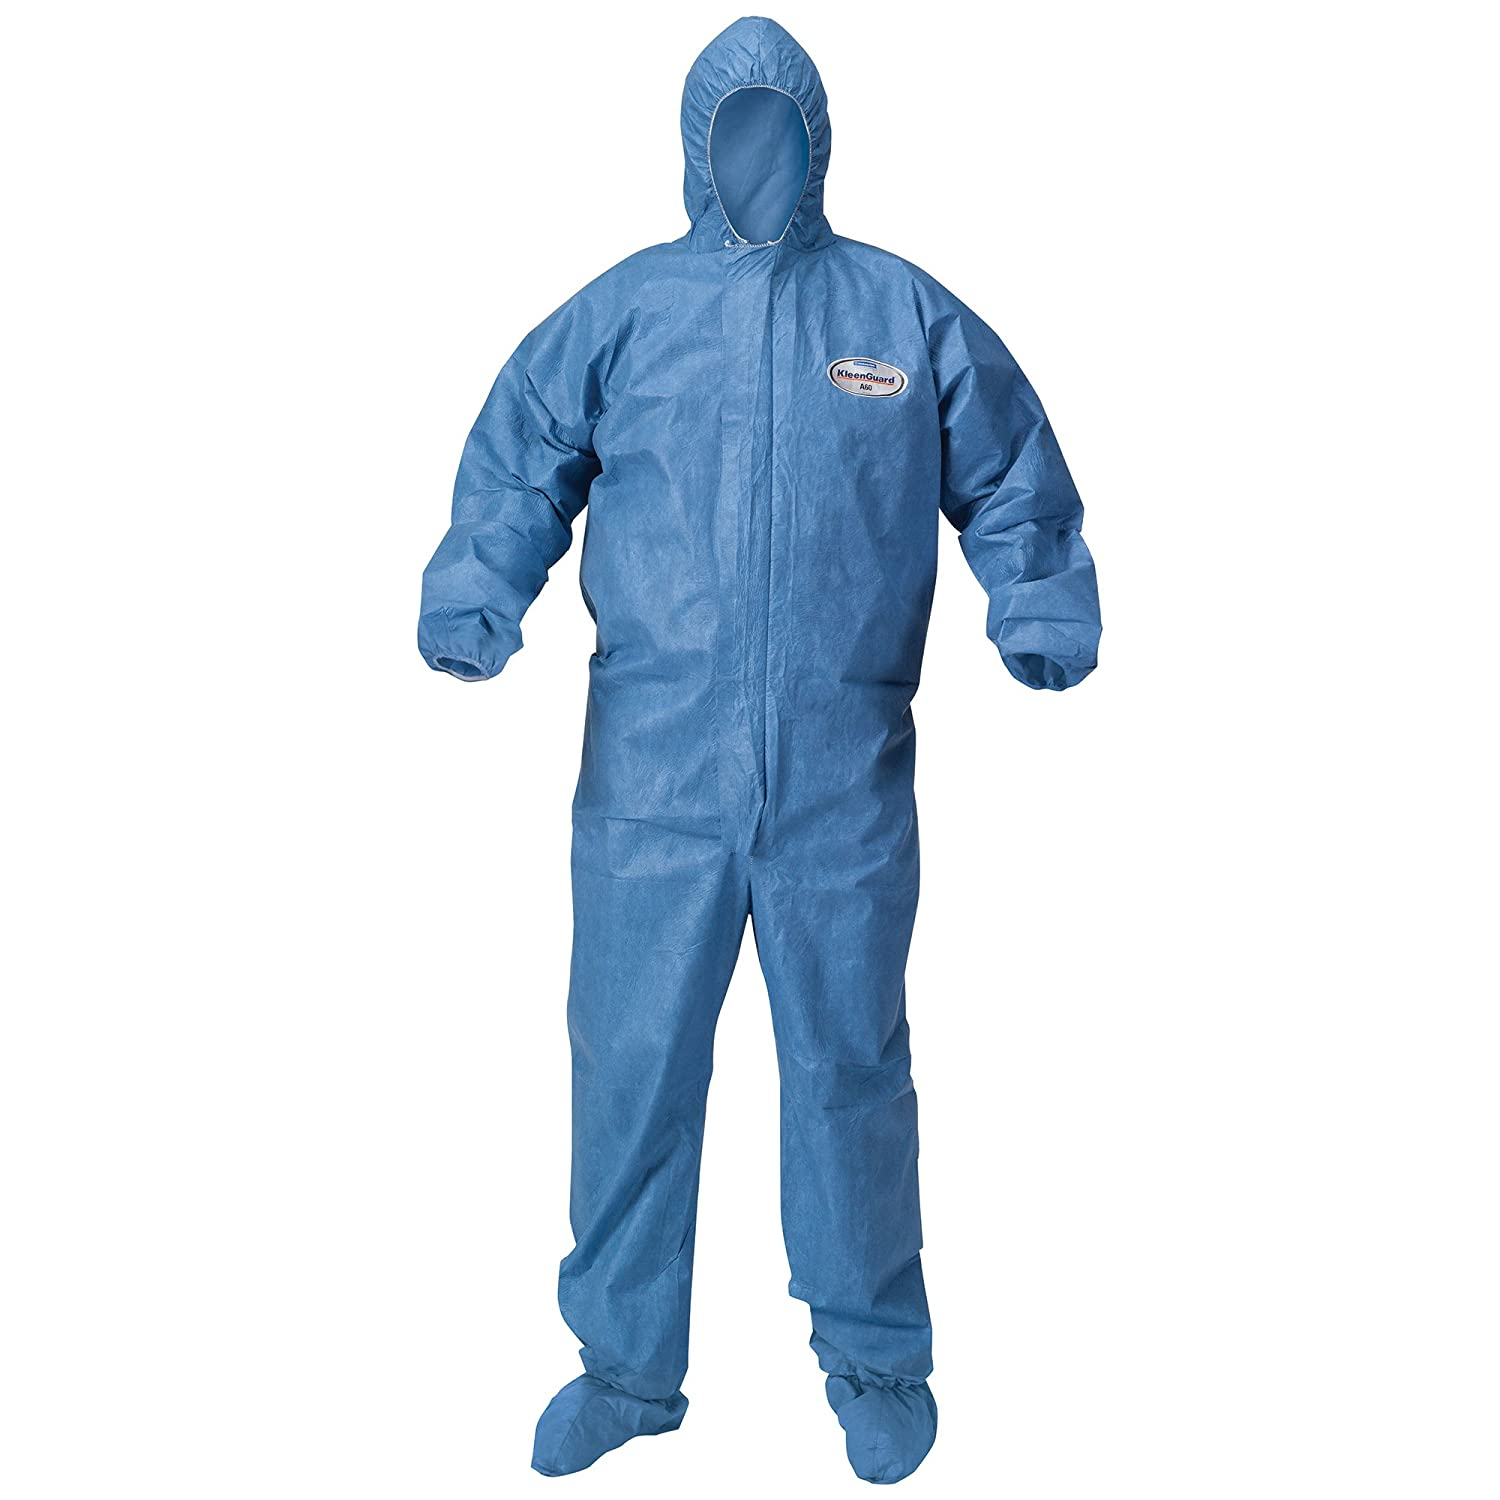 Amazon.com: Kleenguard Chemical Resistant Suit, A60 Bloodborne Pathogen &  Chemical Splash Protection Coveralls (45096), with Hood, Size 3X Extra  Large (3XL) ...